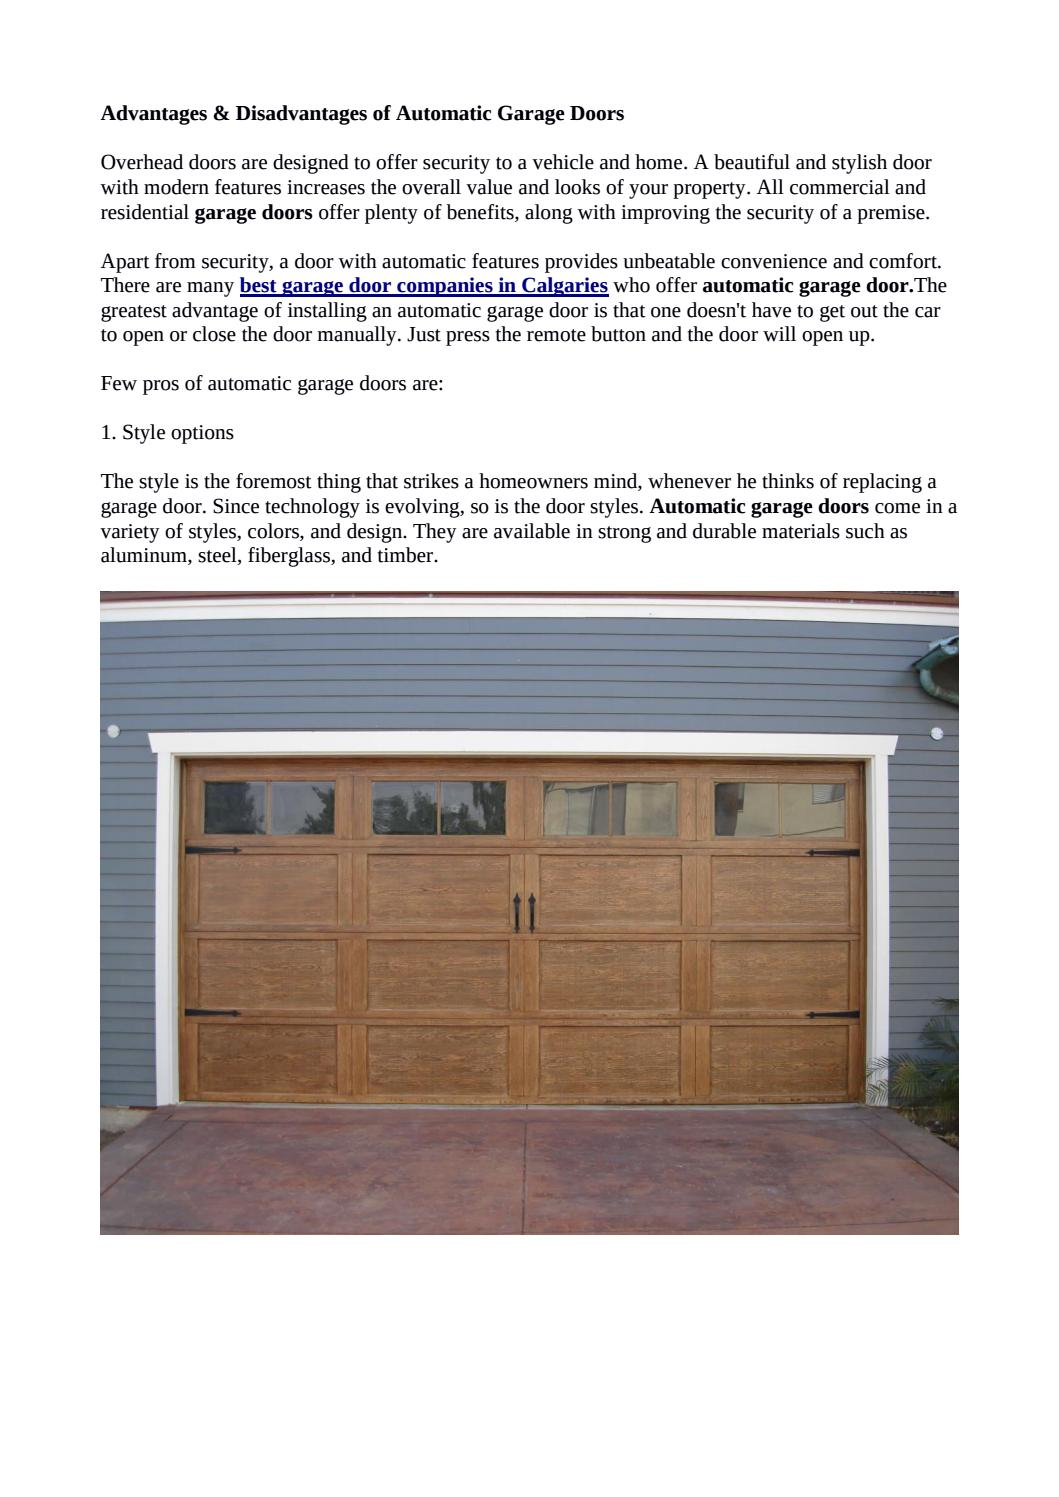 Certain pros and cons of automatic garage doors calgary by repairgaragedoorscalgary issuu